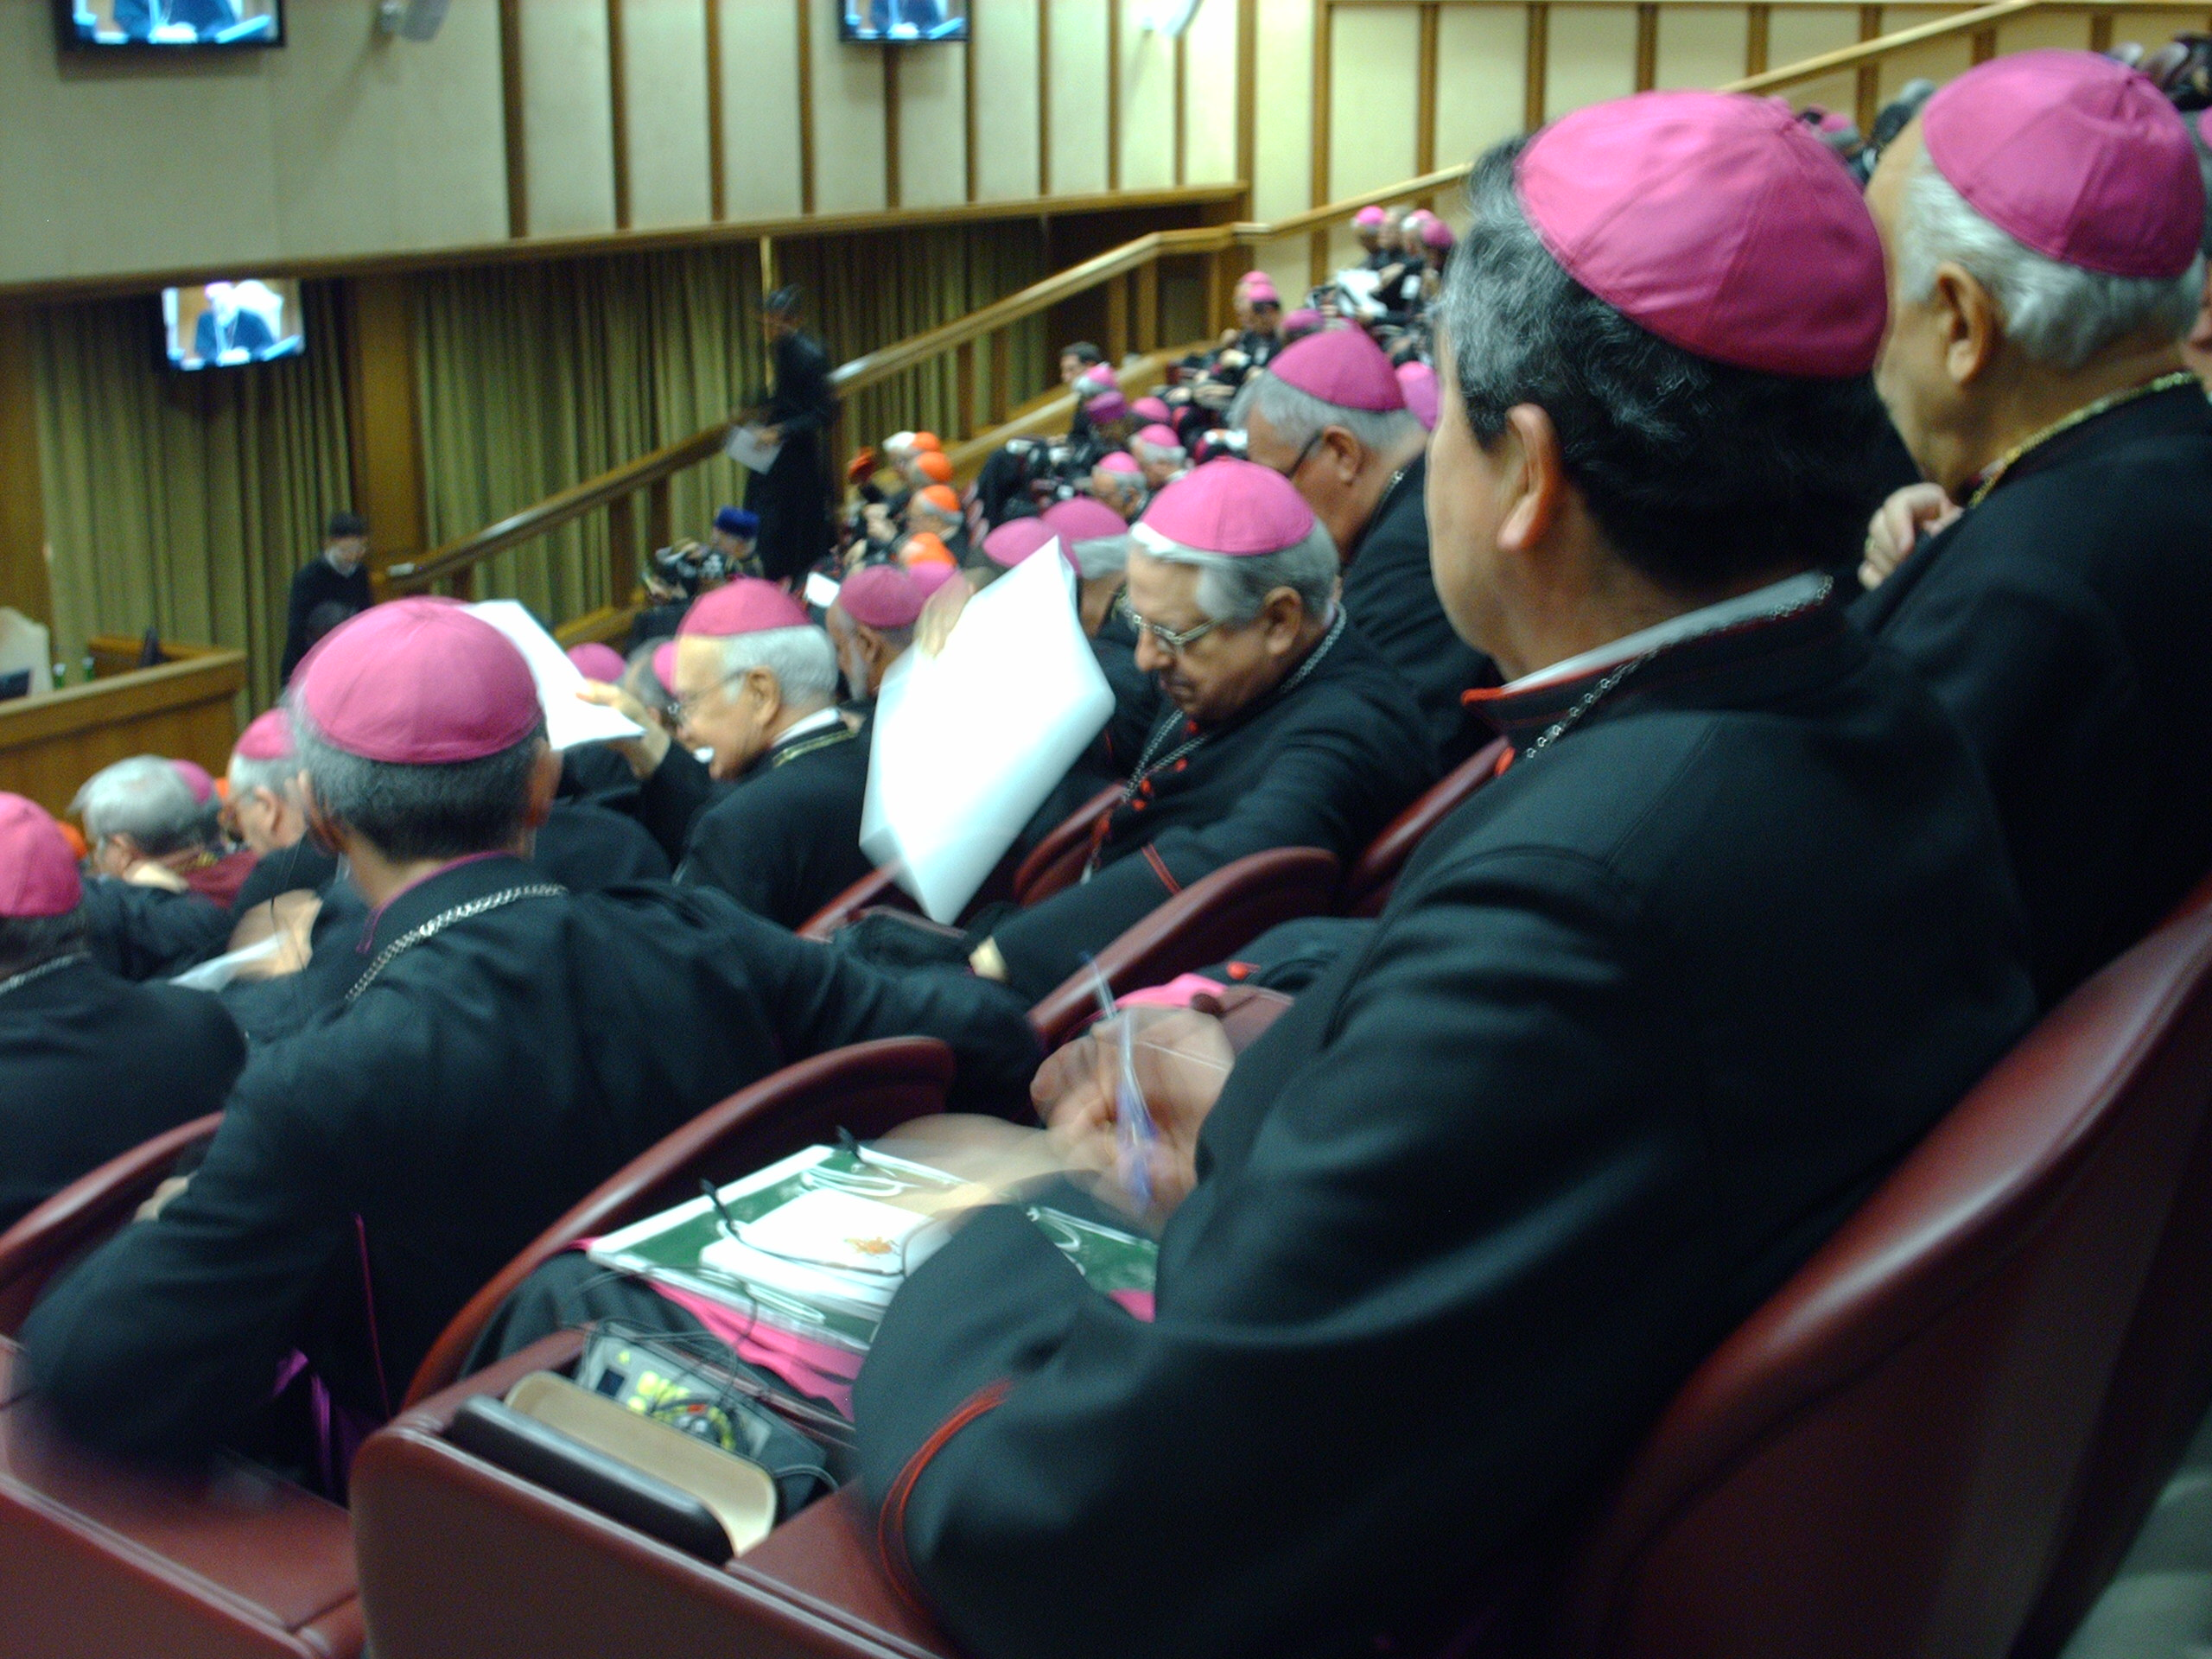 Bishops assembled in the upstairs auditorium of the Vatican's Pul VI Audience Hall.